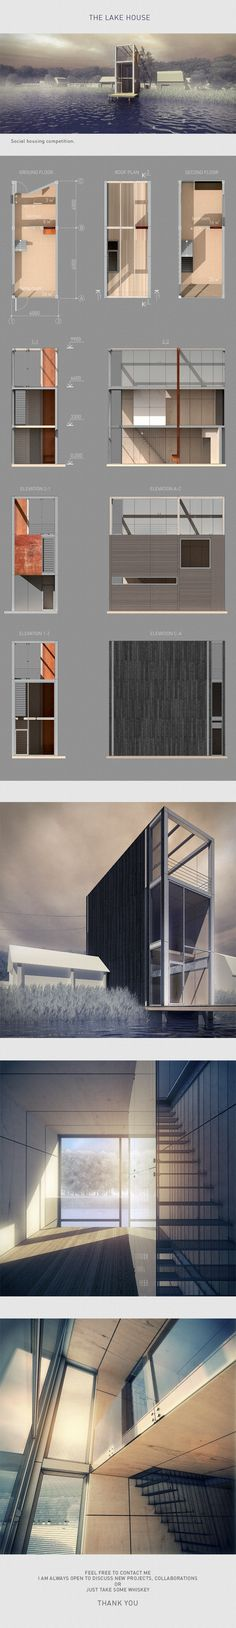 "Entry for social housing competition ""Social revolution 2012"""